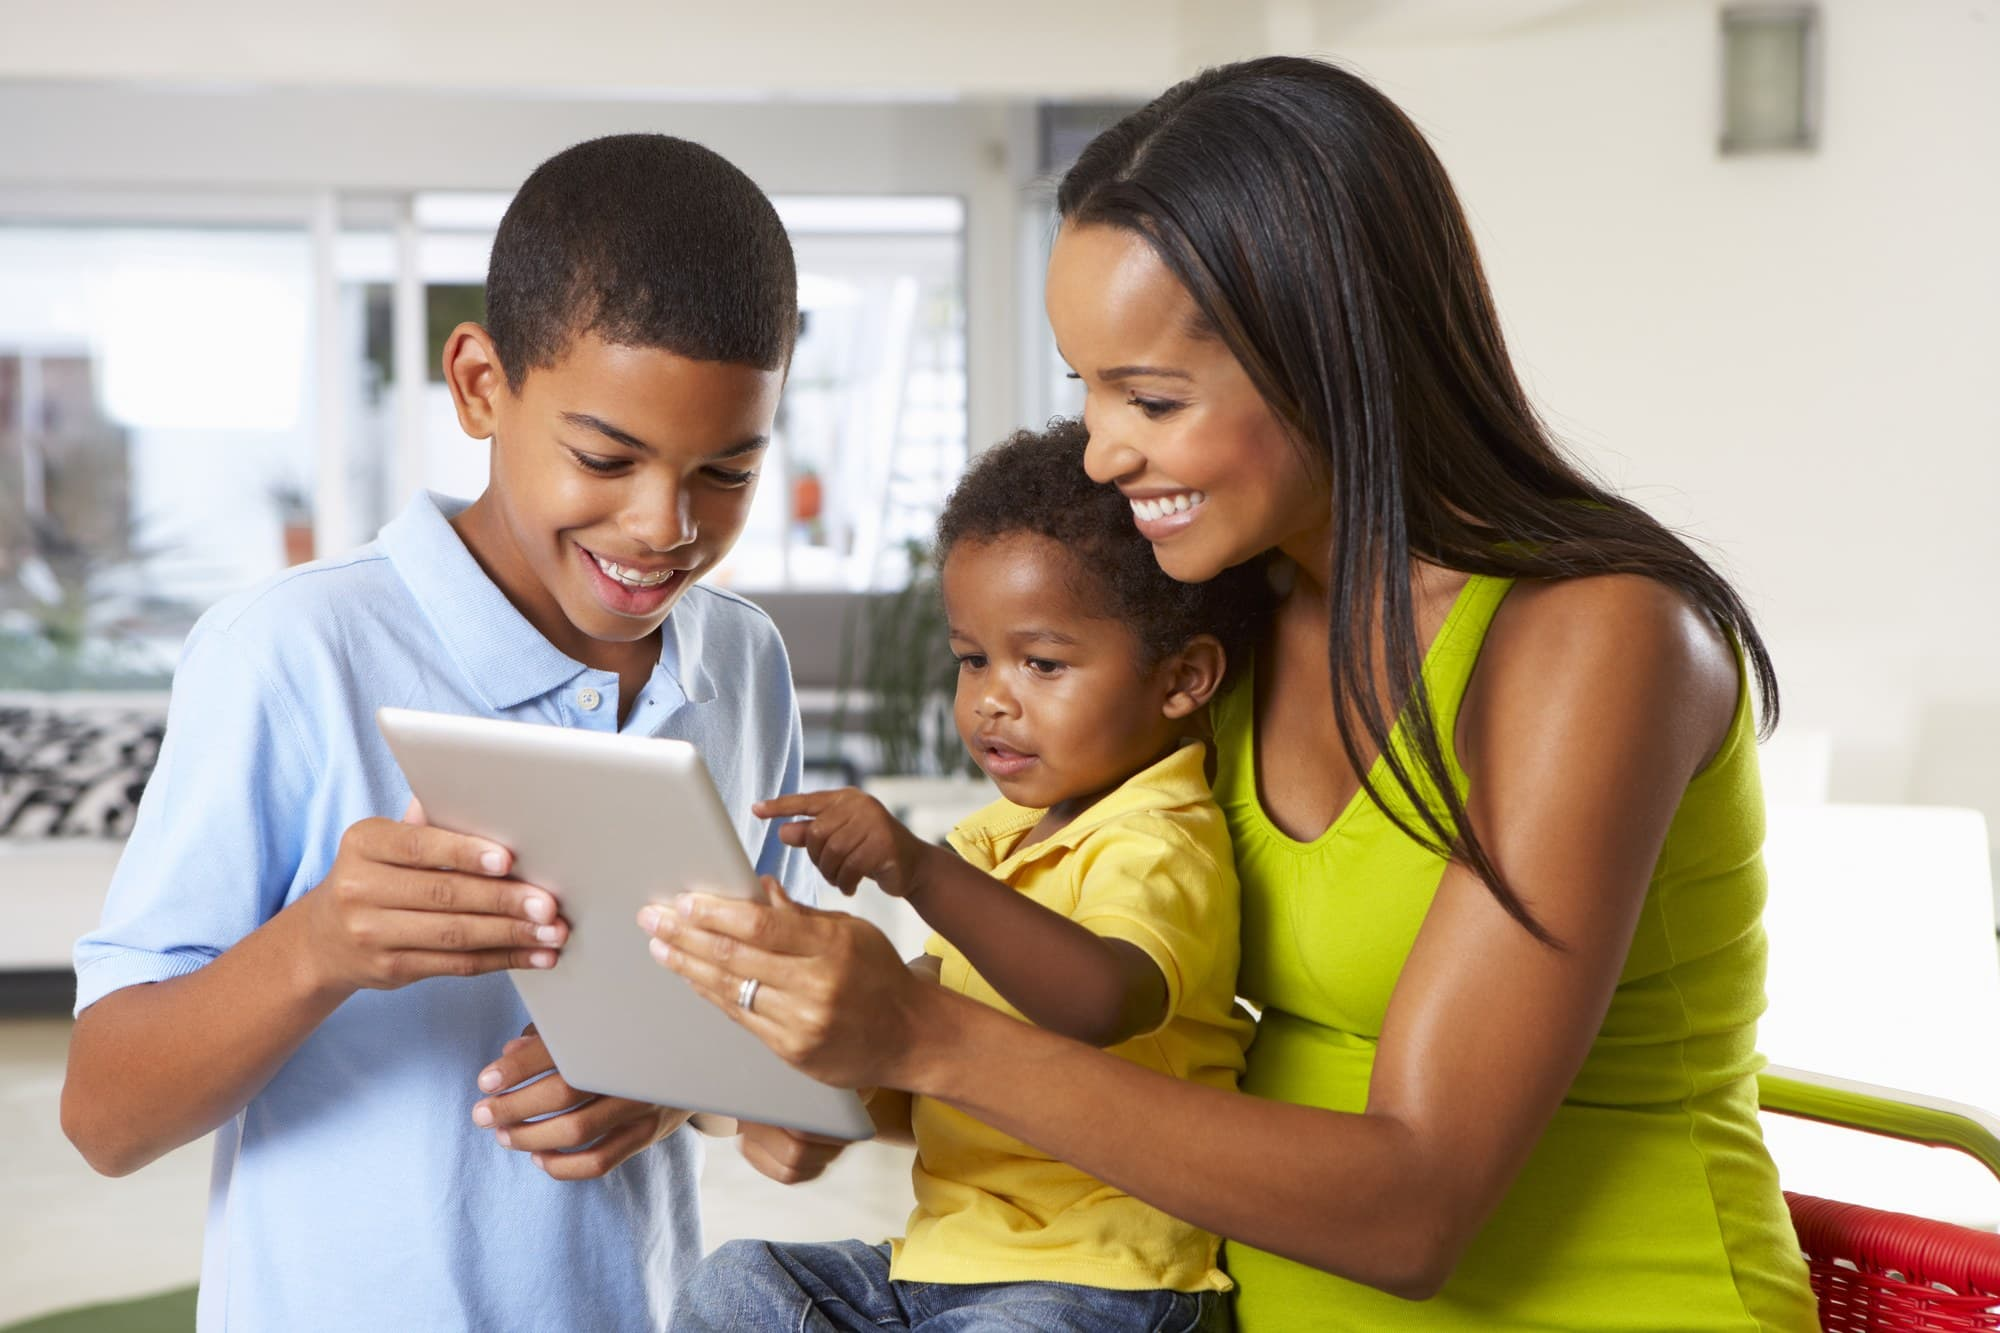 Search the Web for family travel deals